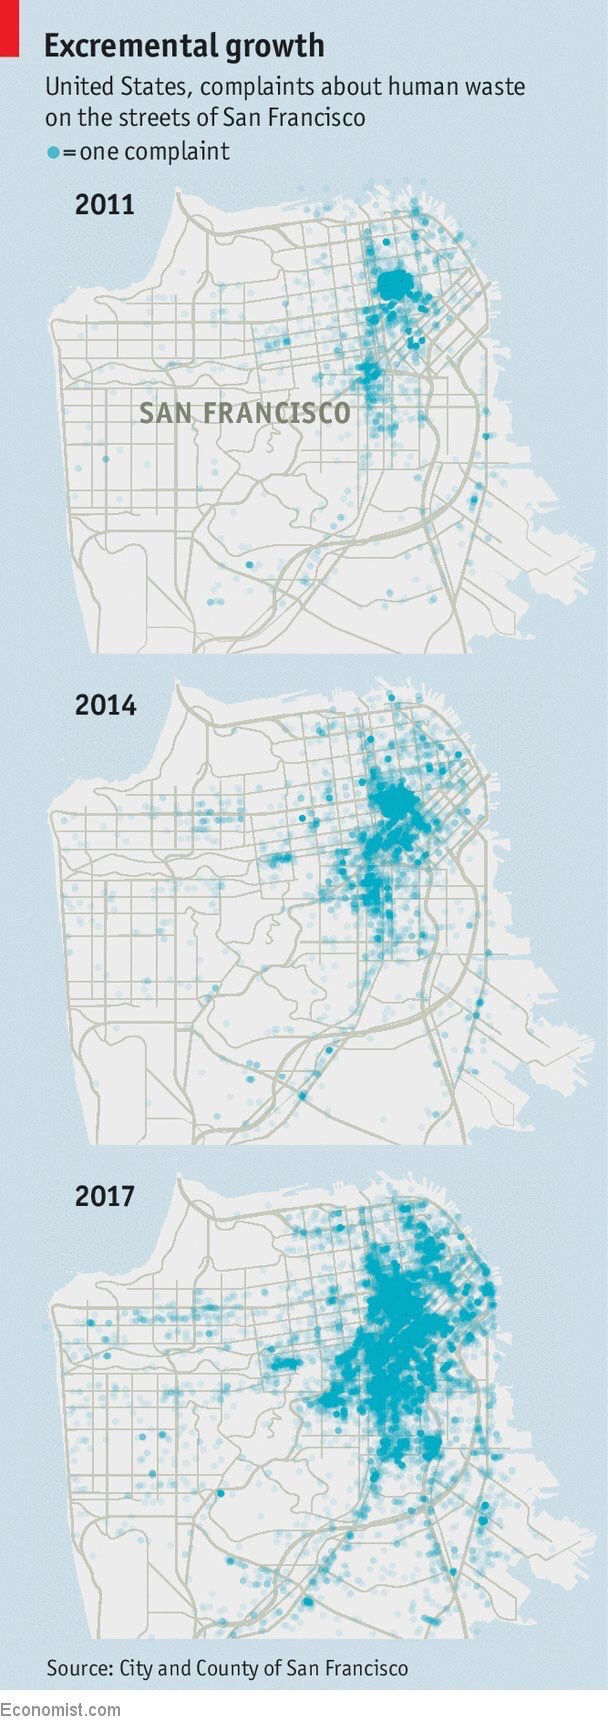 Human waste on the street grows in San Francisco